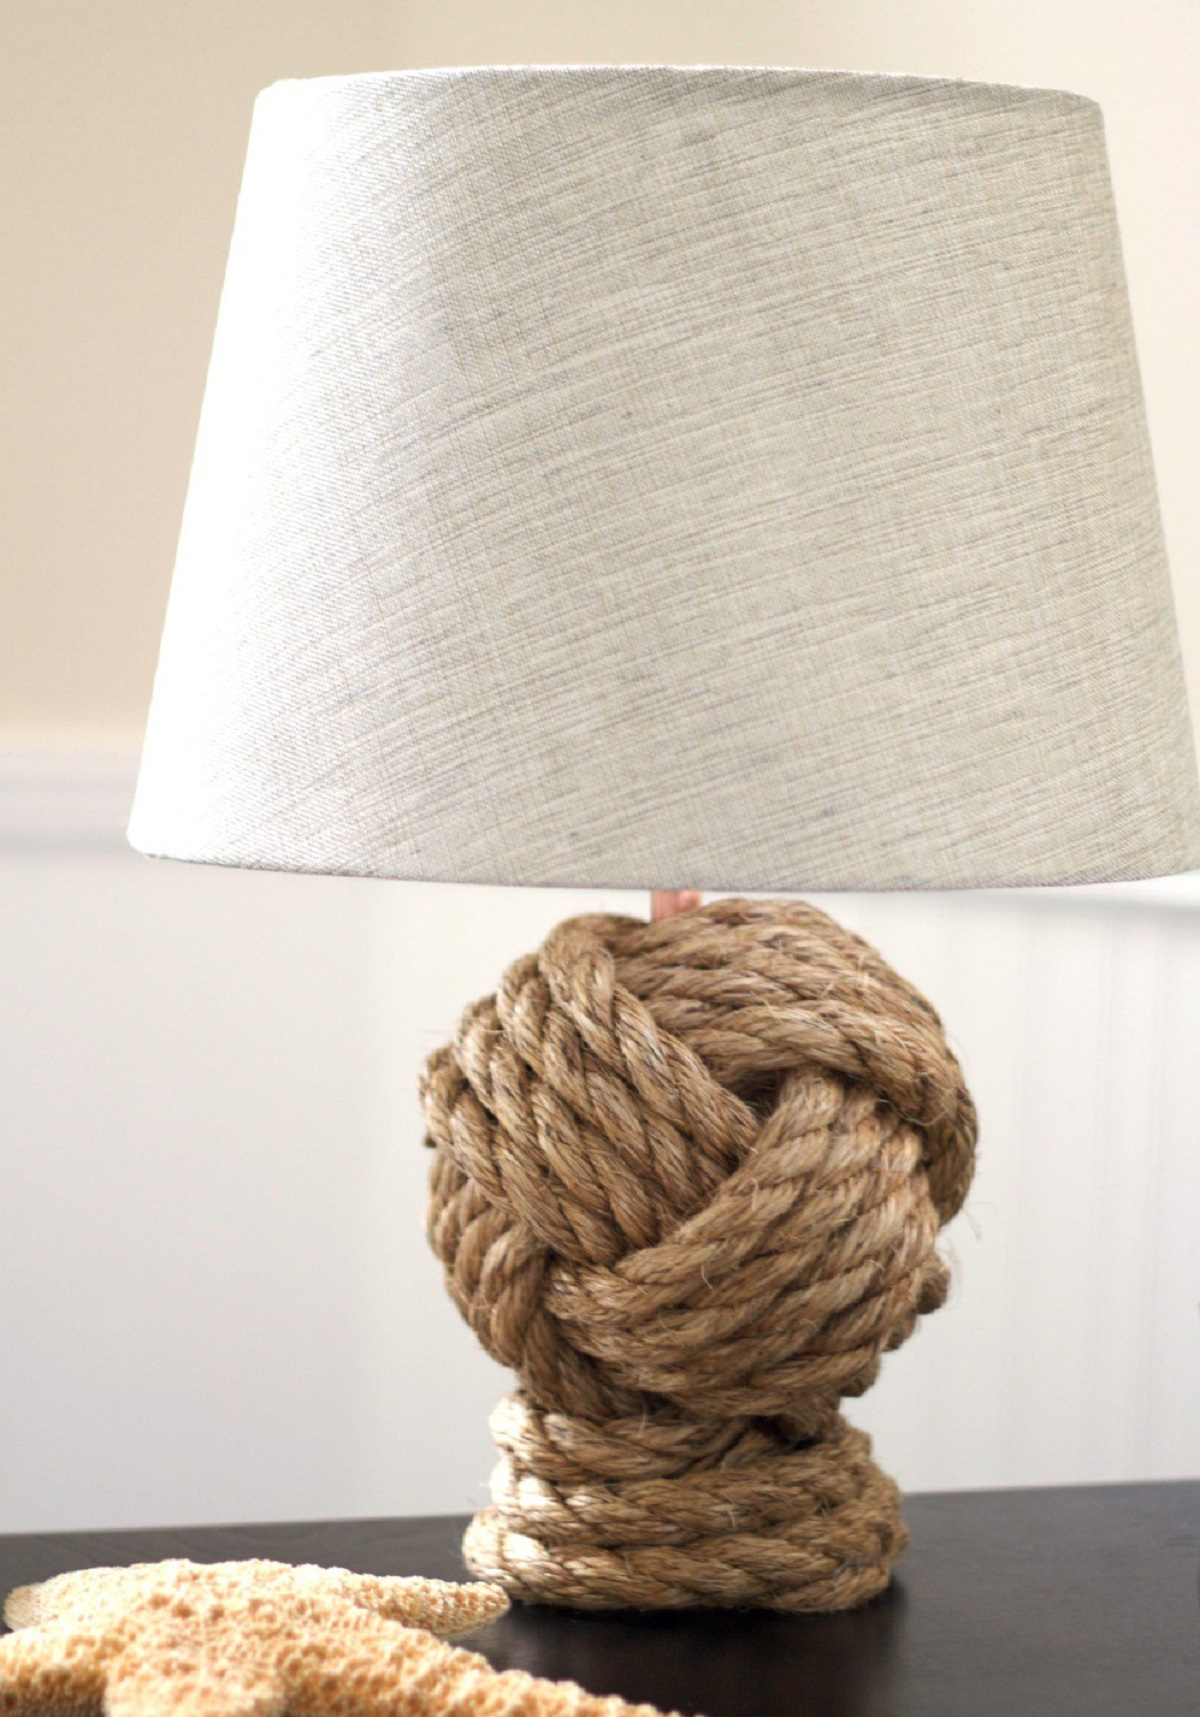 Designer lamp DIY Lamp Ideas To Revamp Your Old Lamp Into The Most Captivating Lamp Ever